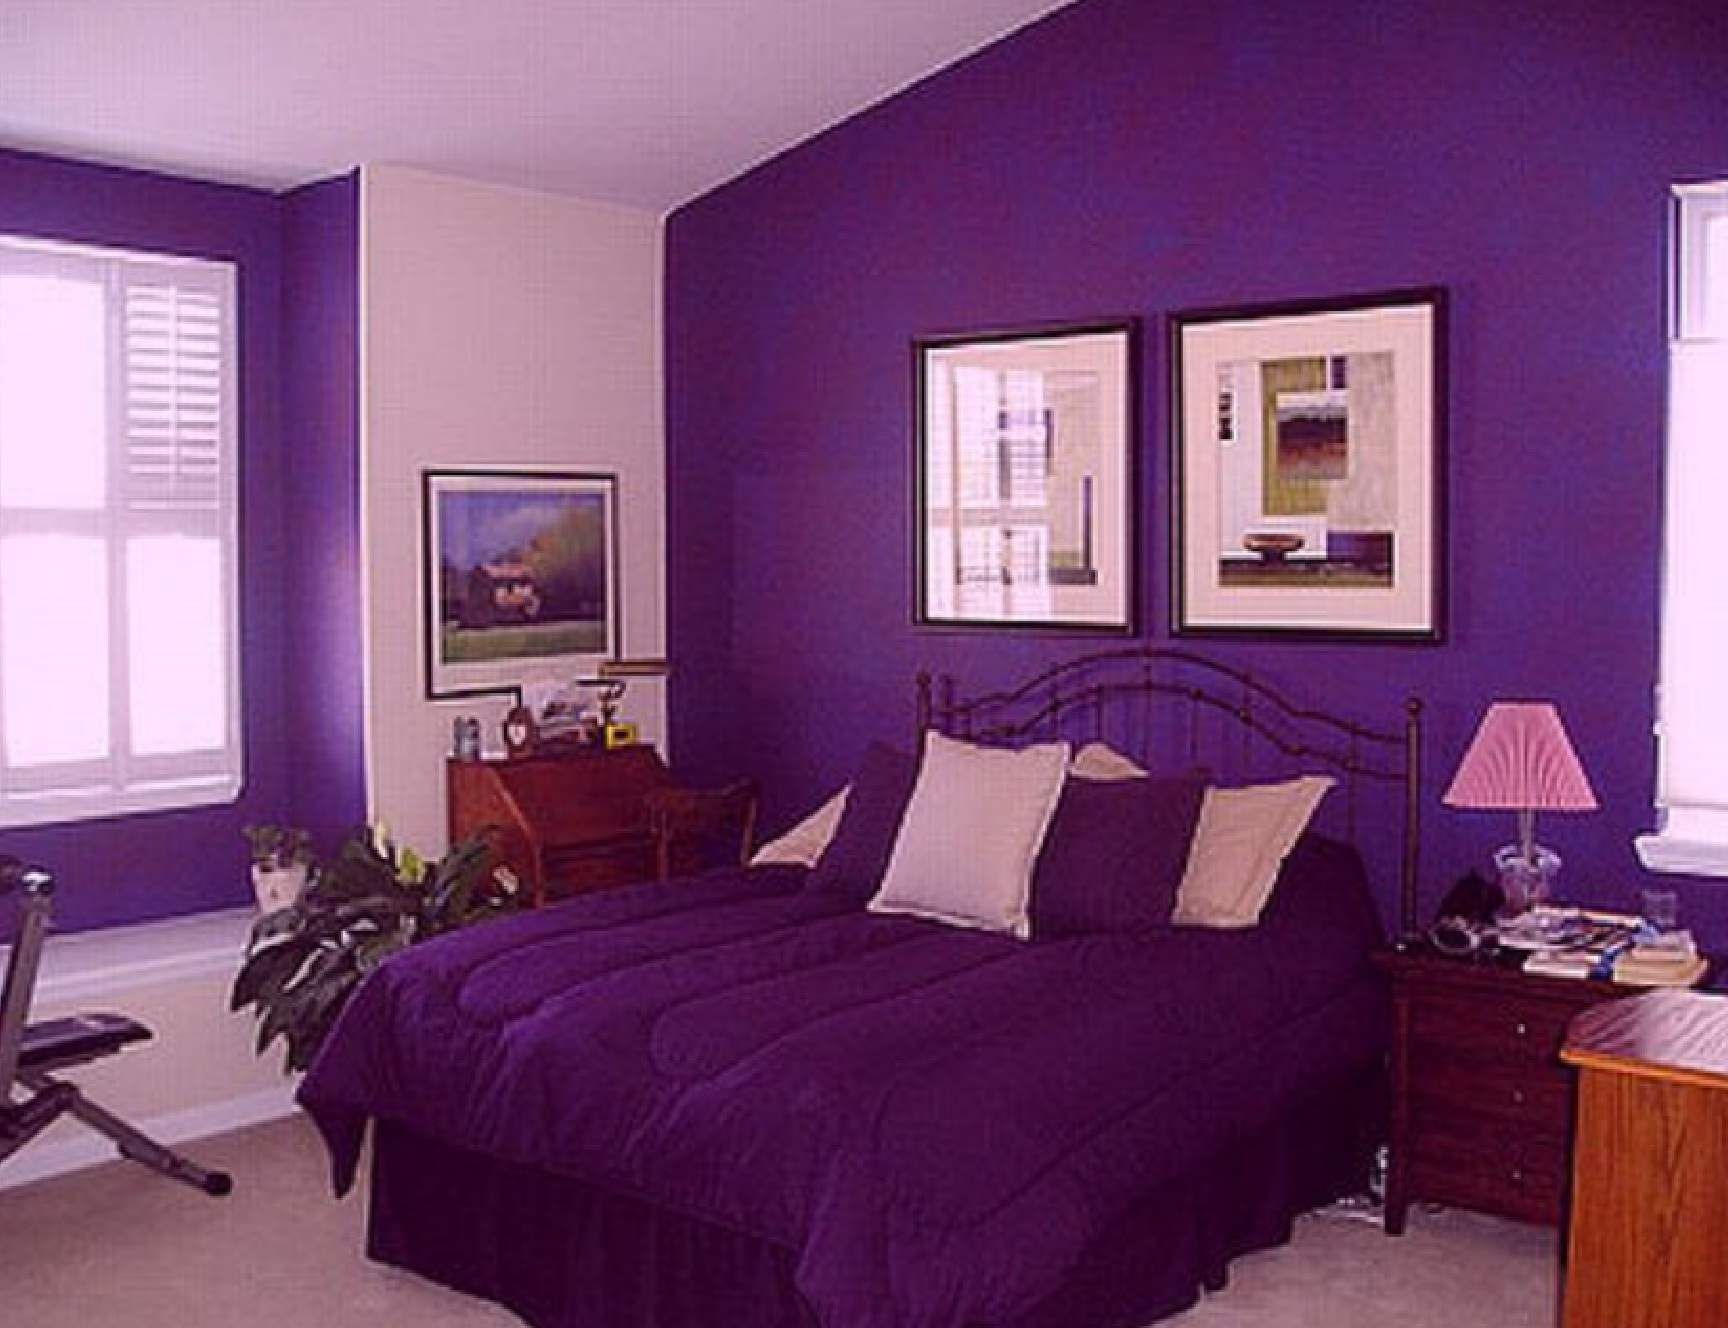 Bedroom Decorating Ideas Purple purple bed room ideas | bedroom, cute purple bedrooms firmones